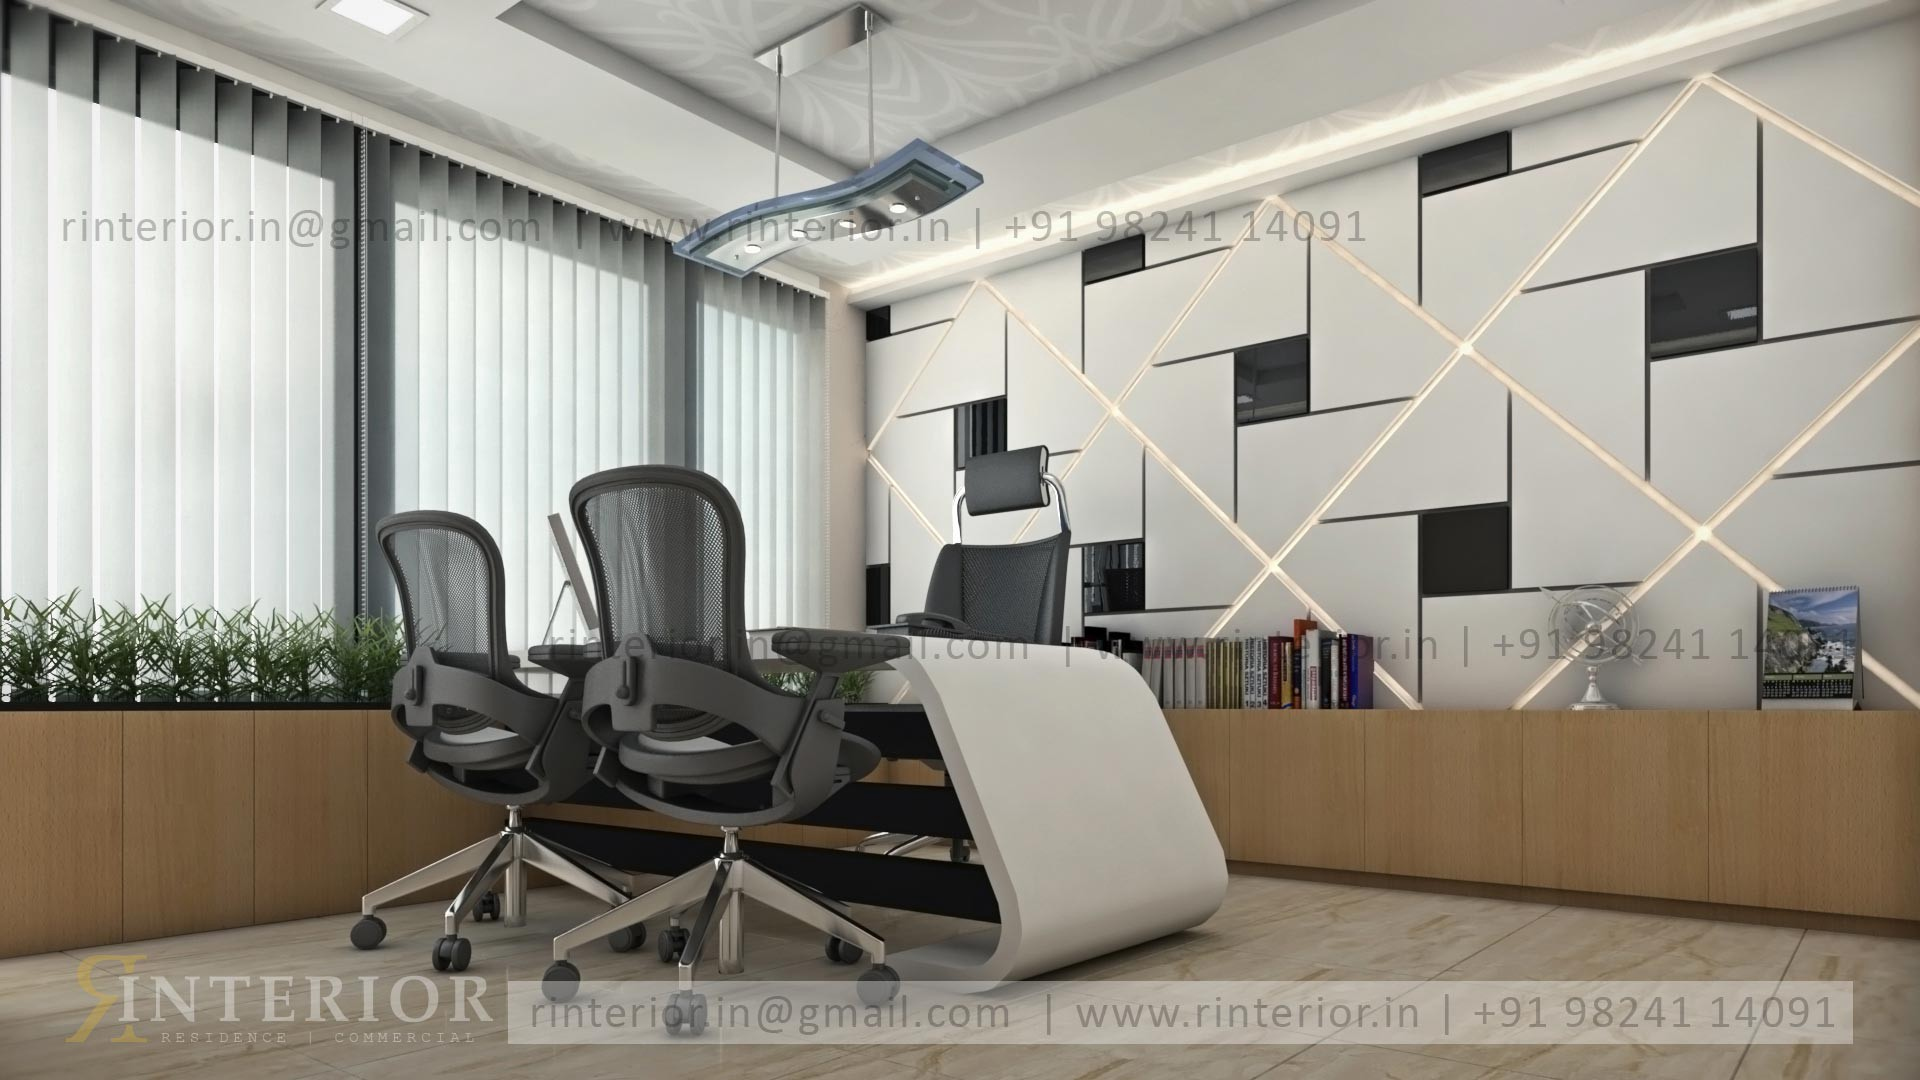 Great Solution For Commercial Interior Design In India Rinterior By R Interior Medium